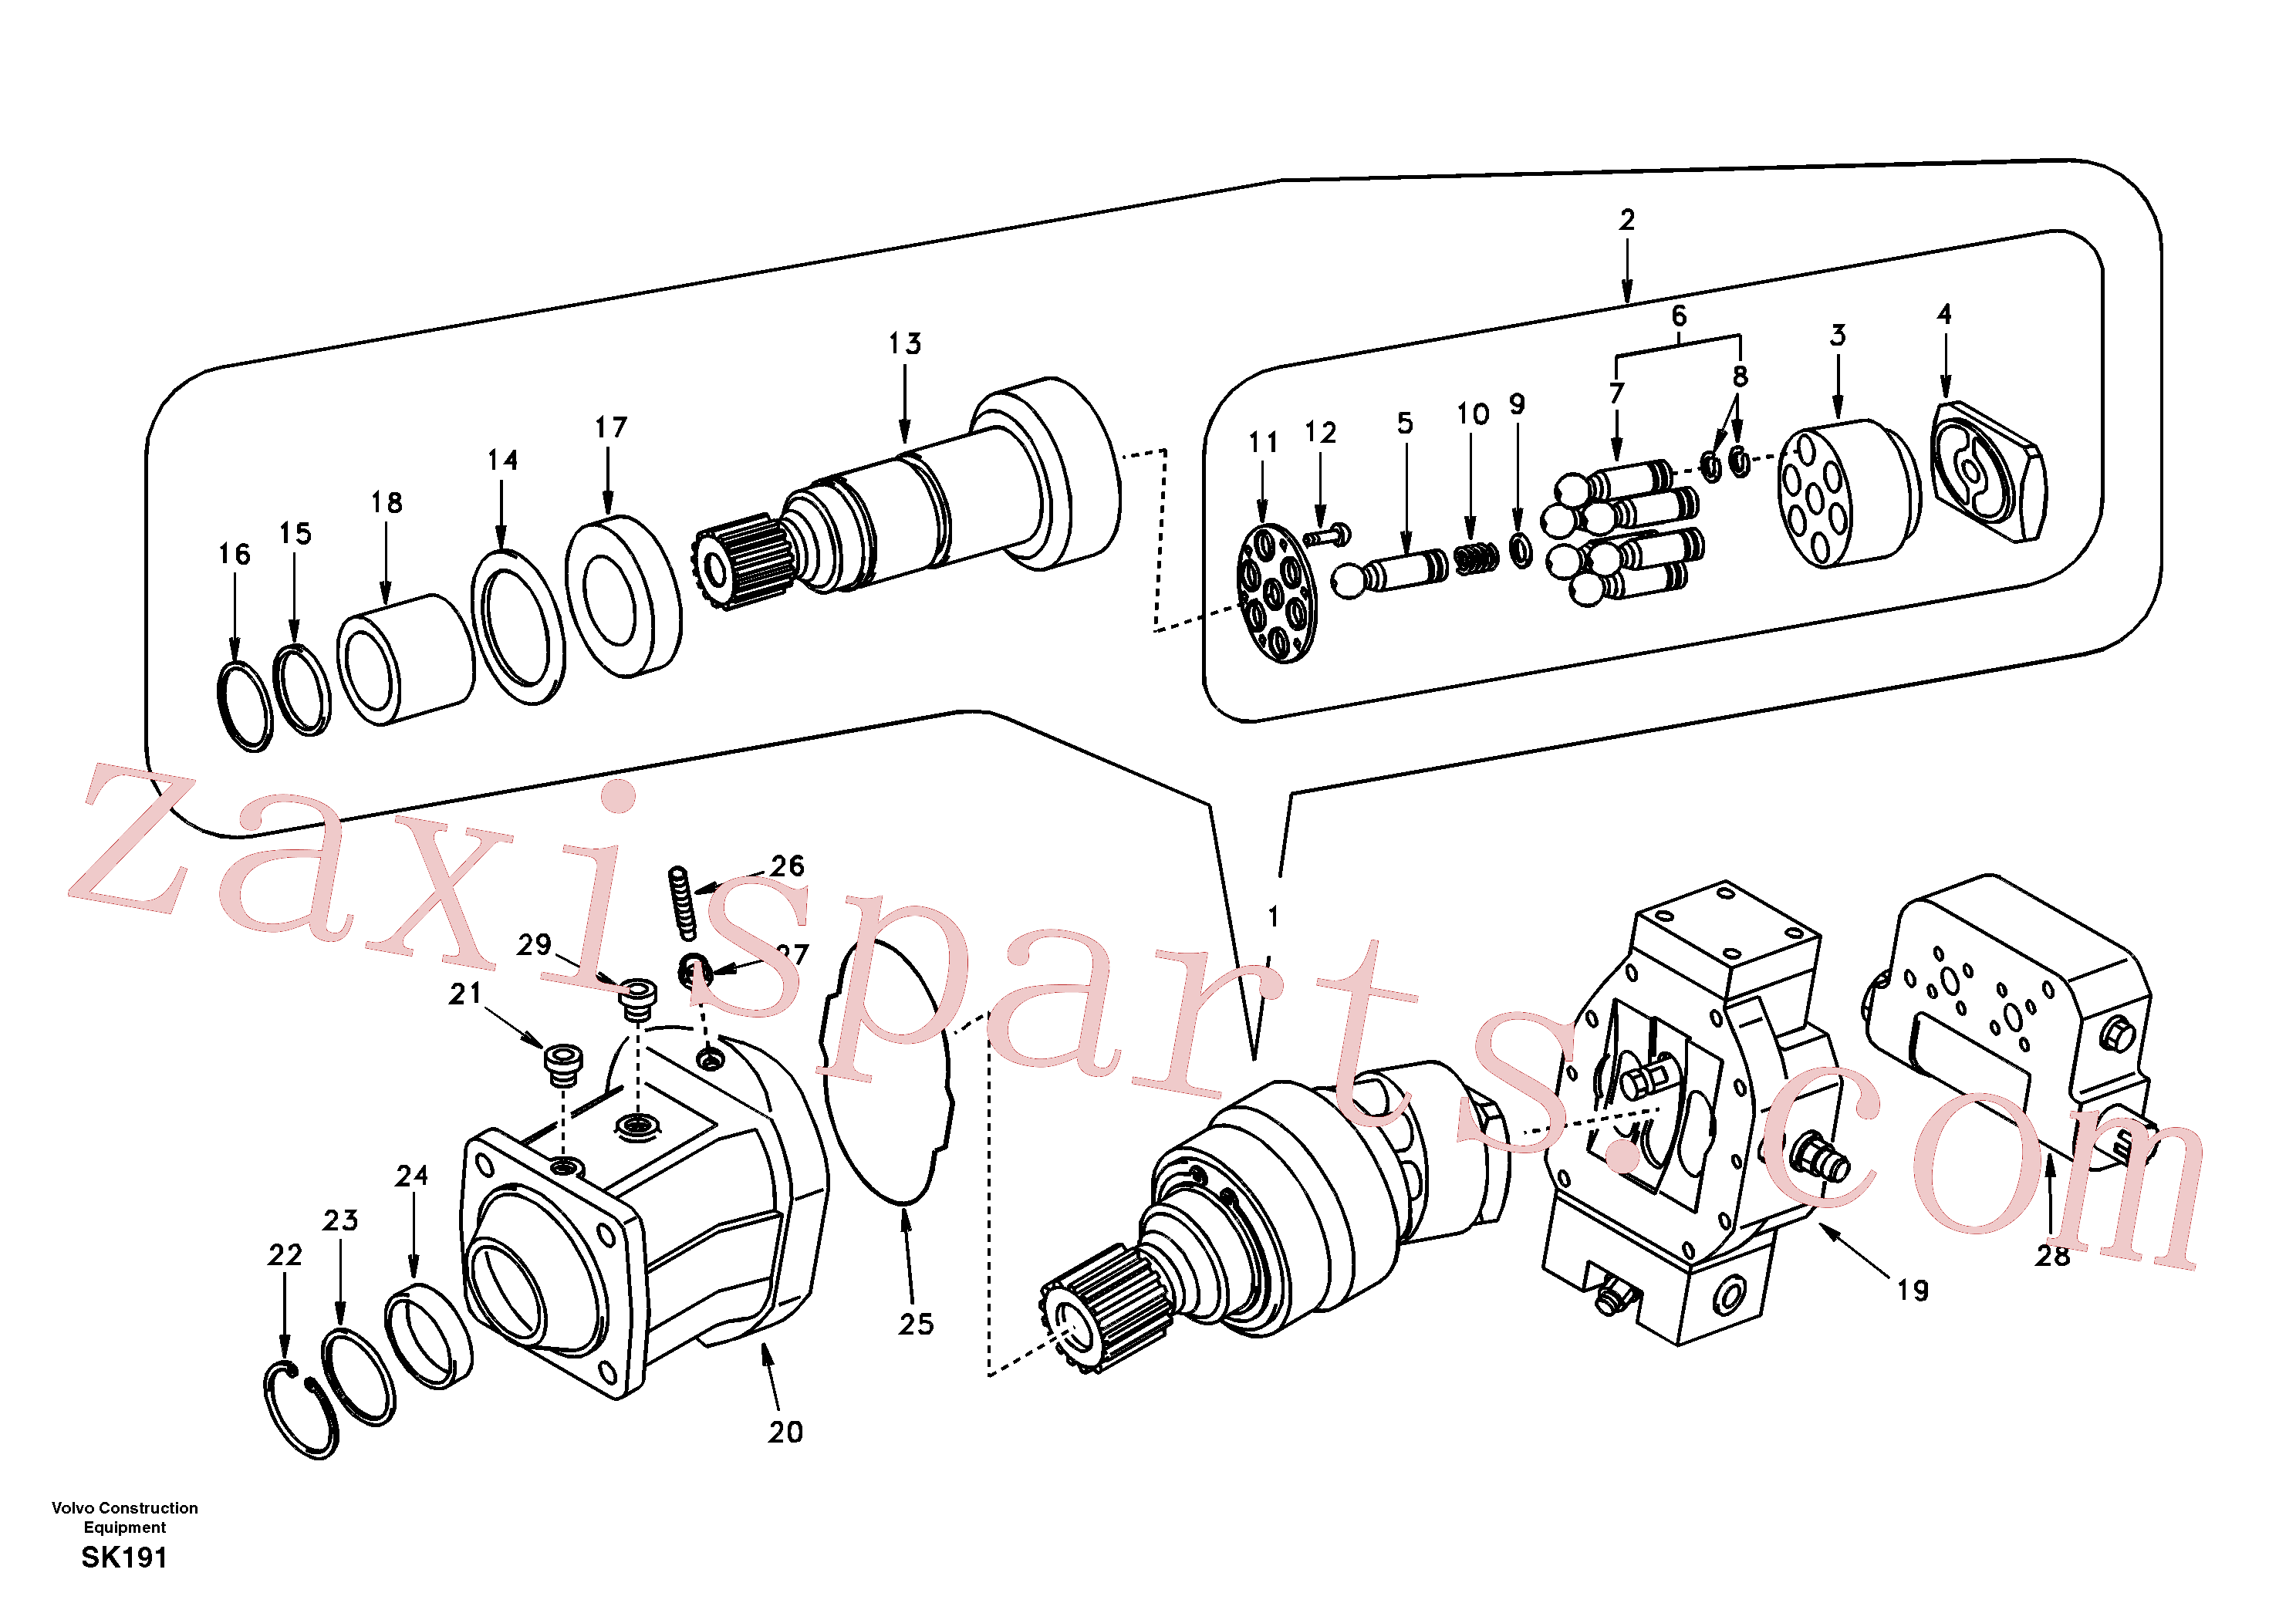 SA8230-30270 for Volvo Travel motor(SK191 assembly)